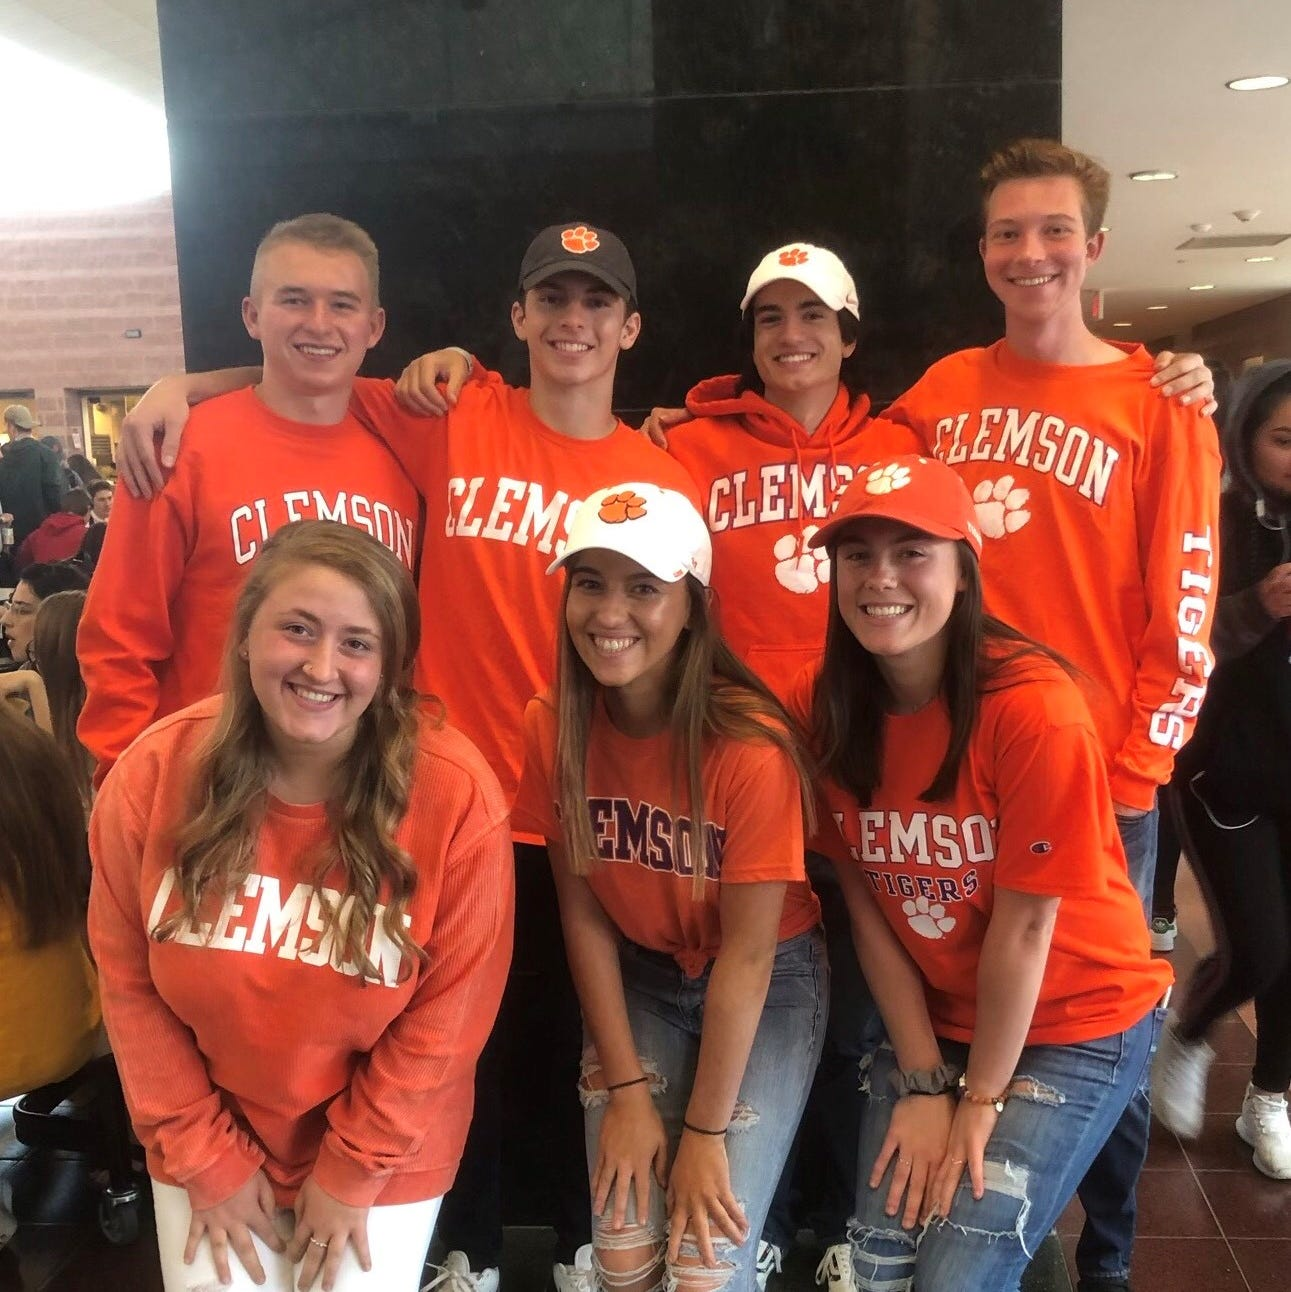 Garden State South: Why Clemson University has so many students from New Jersey